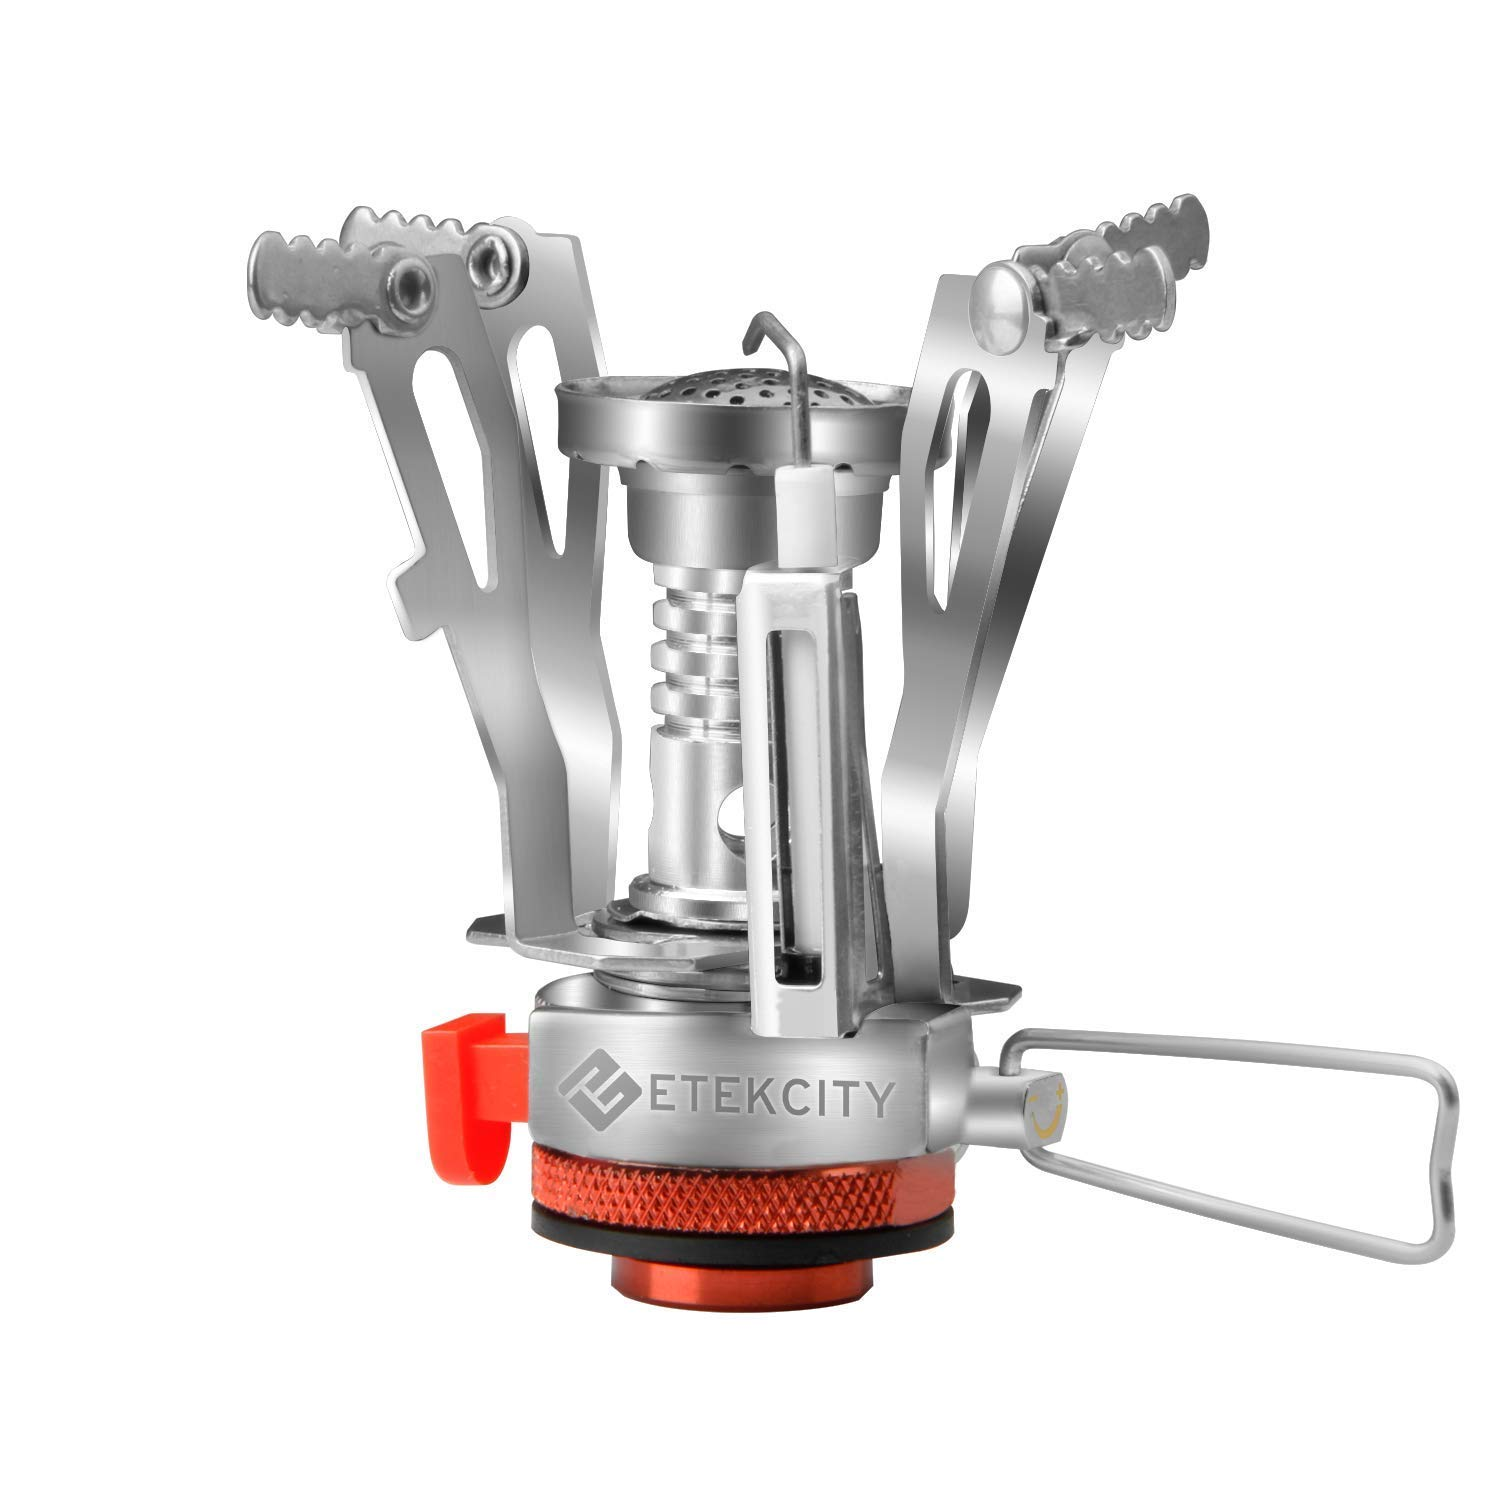 Etekcity Ultralight Portable Outdoor Backpacking Camping Stove with Piezo Ignition (Orange, 1 Pack)